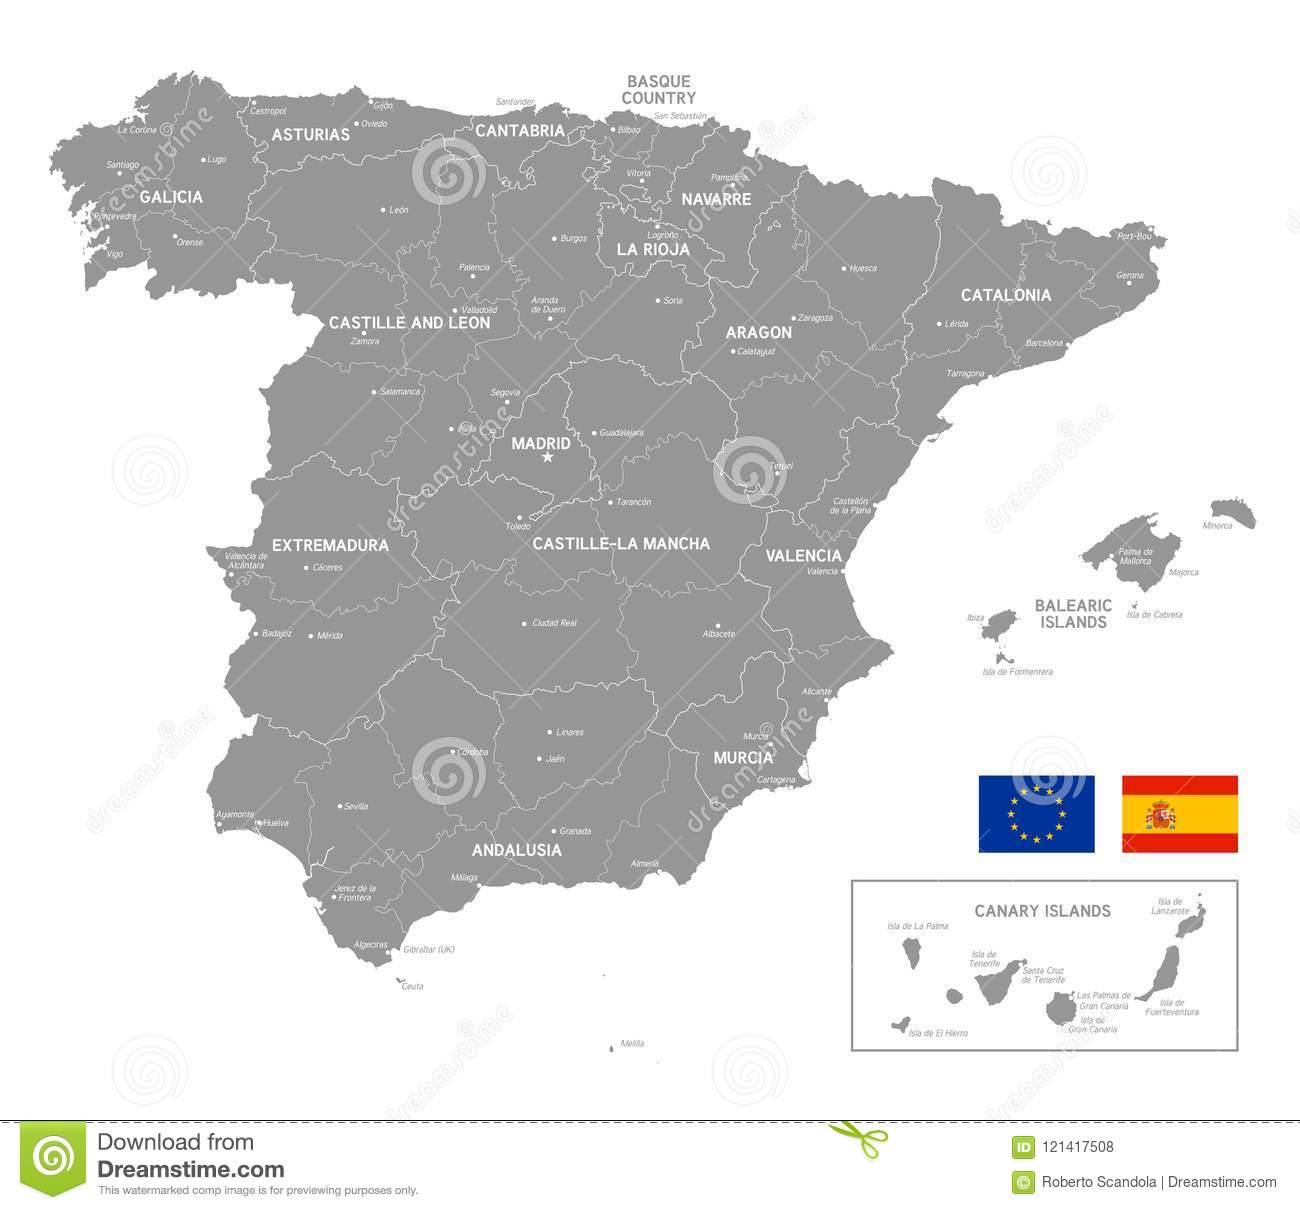 Map Of Spain Alicante Area.89 Alicante Region Map Map Of The Whole Spain Showing Alicante